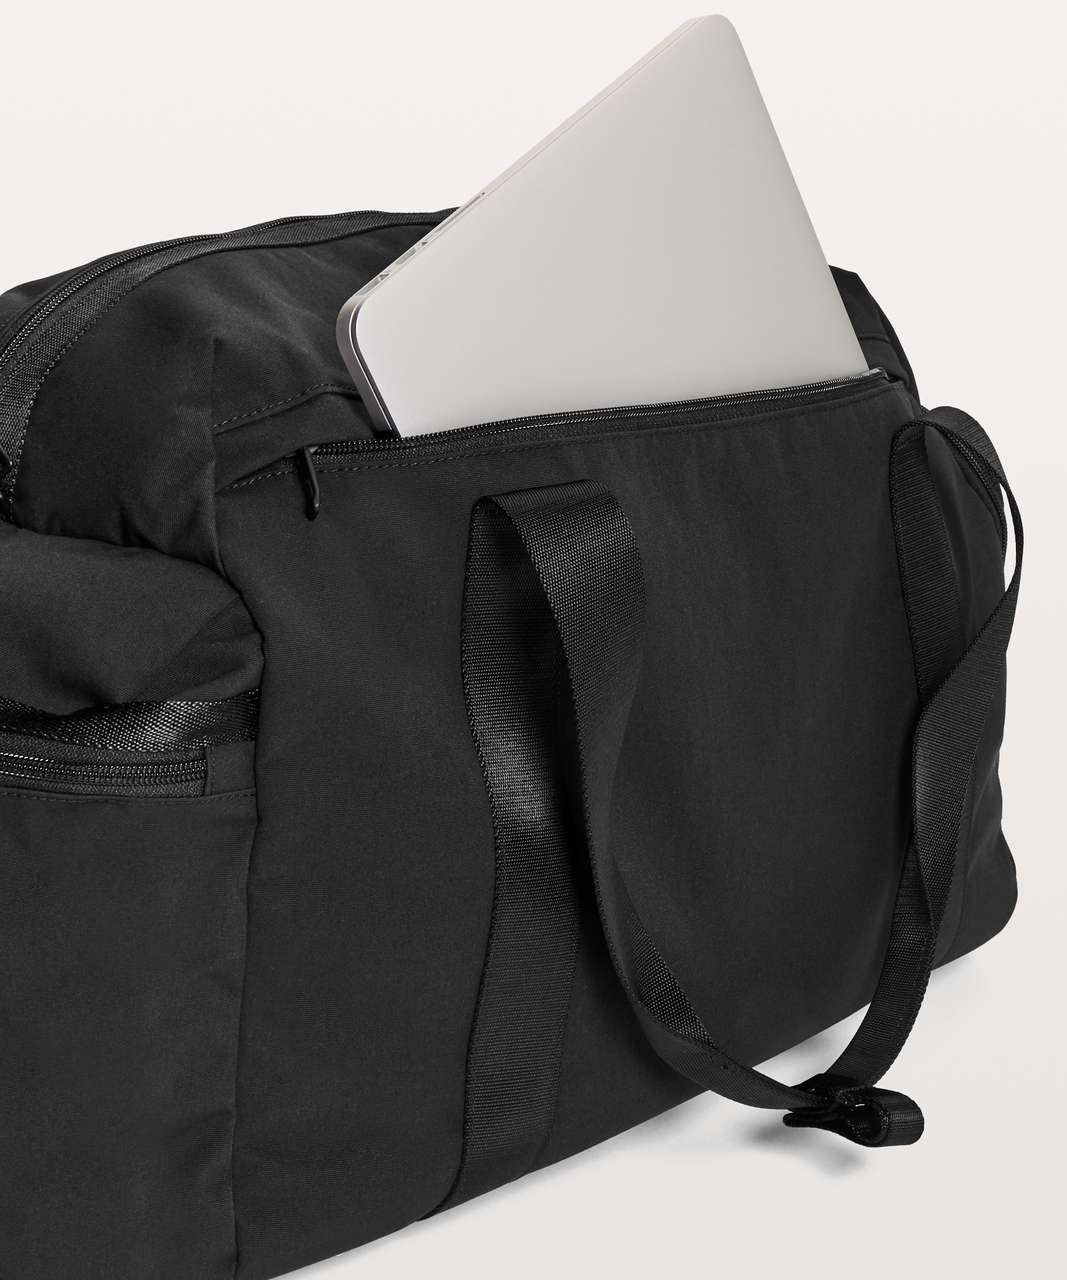 Lululemon Command The Day Duffle *37L - Black